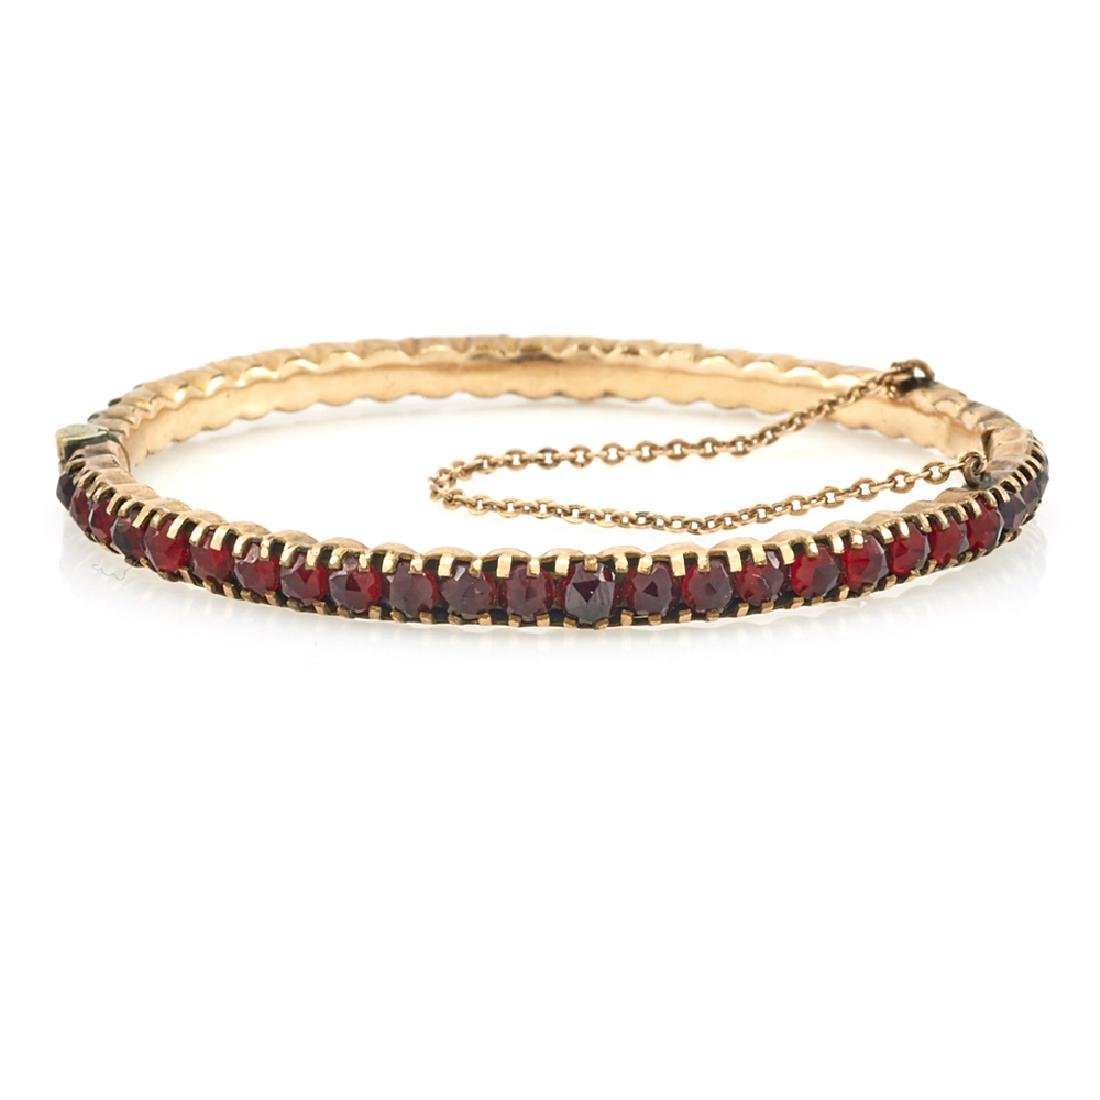 10k Rose gold Victorian Bohemian garnet bangle bracelet